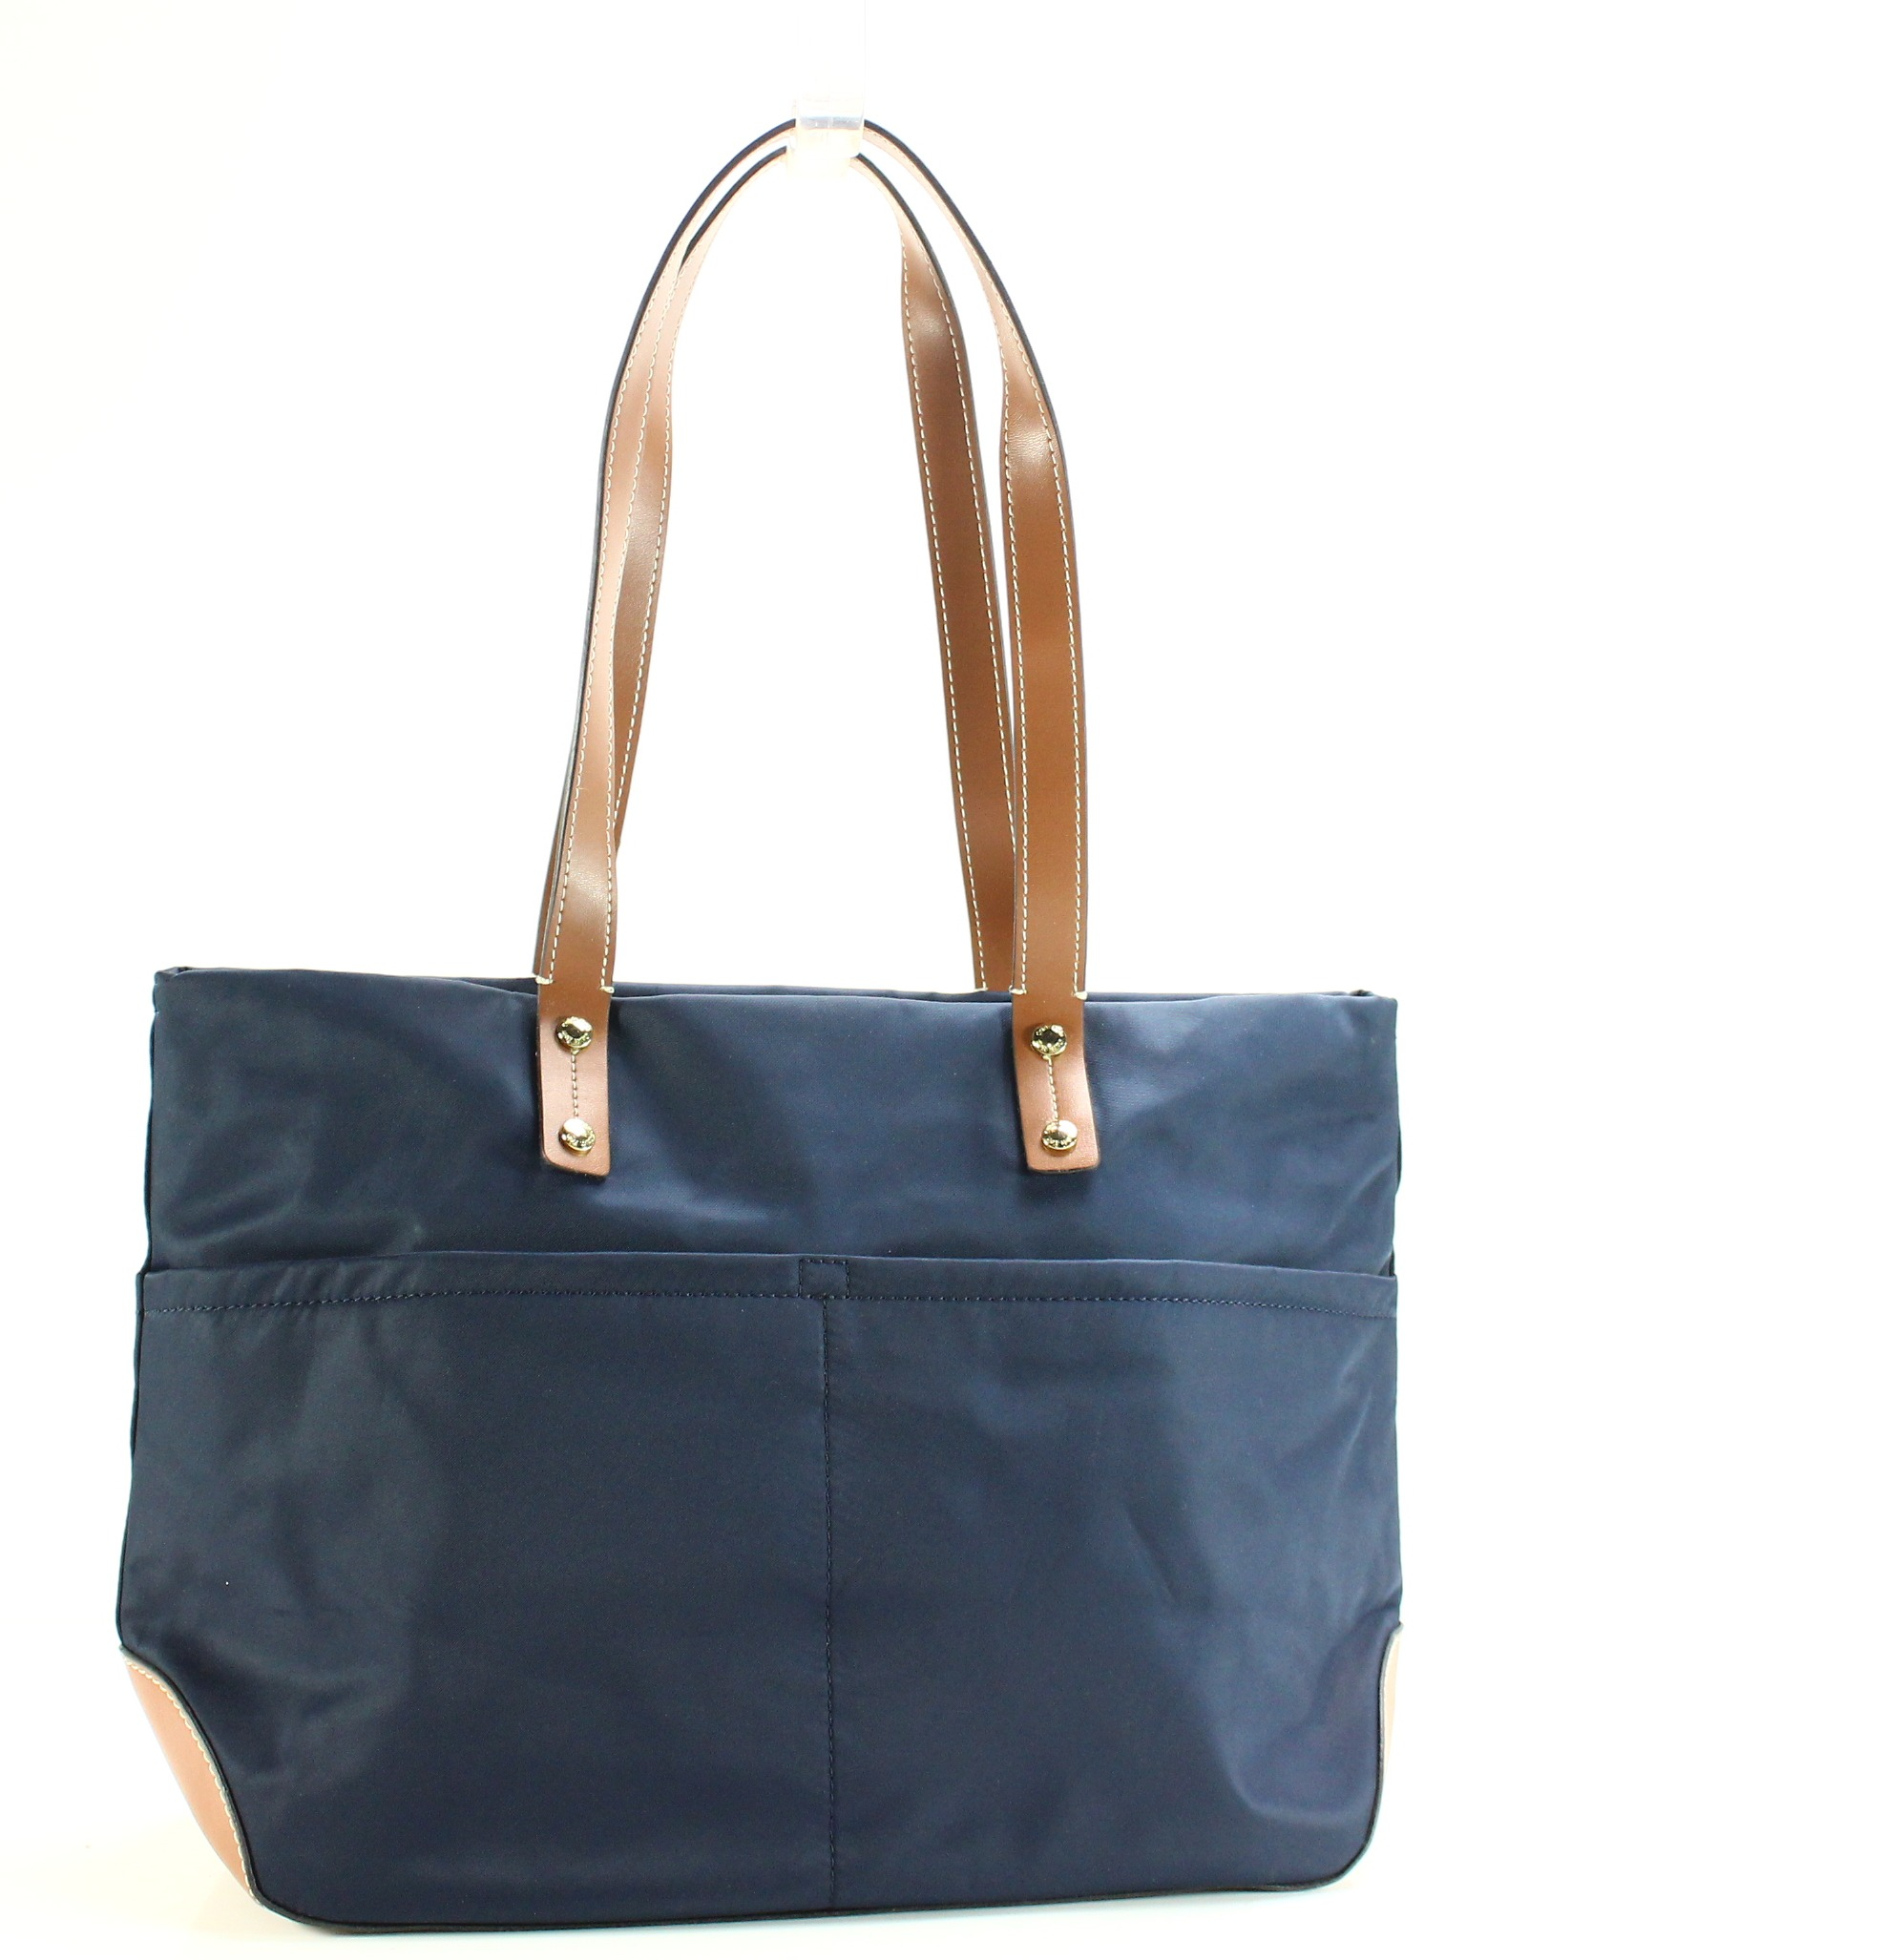 68bfbc62c048 Navy And White Tote Handbag